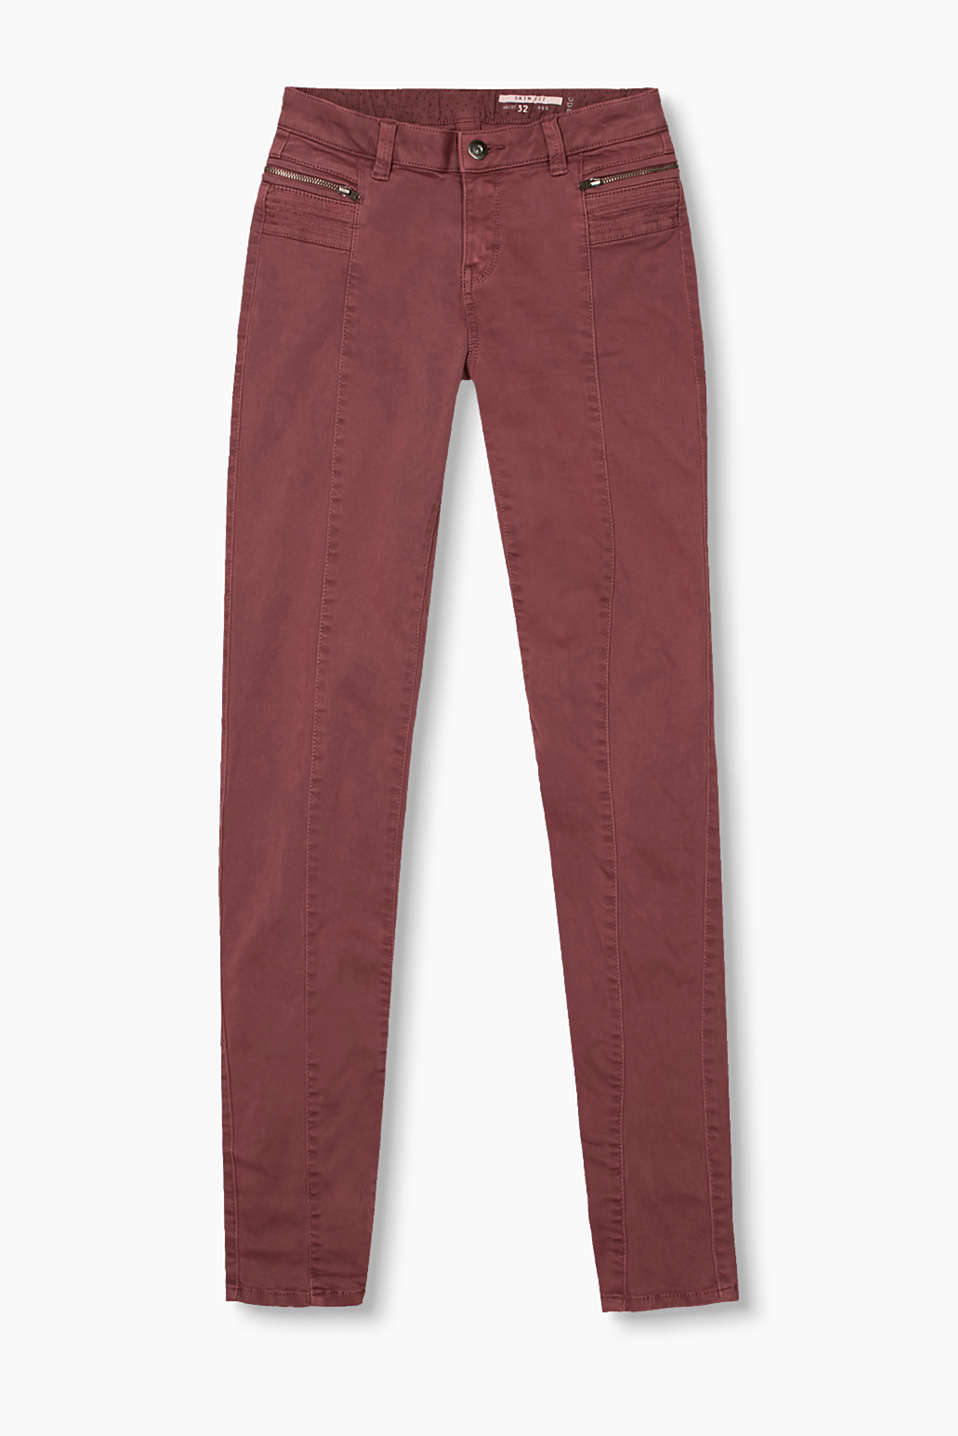 Slim-fitting, stretchy cotton trousers with decorative seams and zip pockets